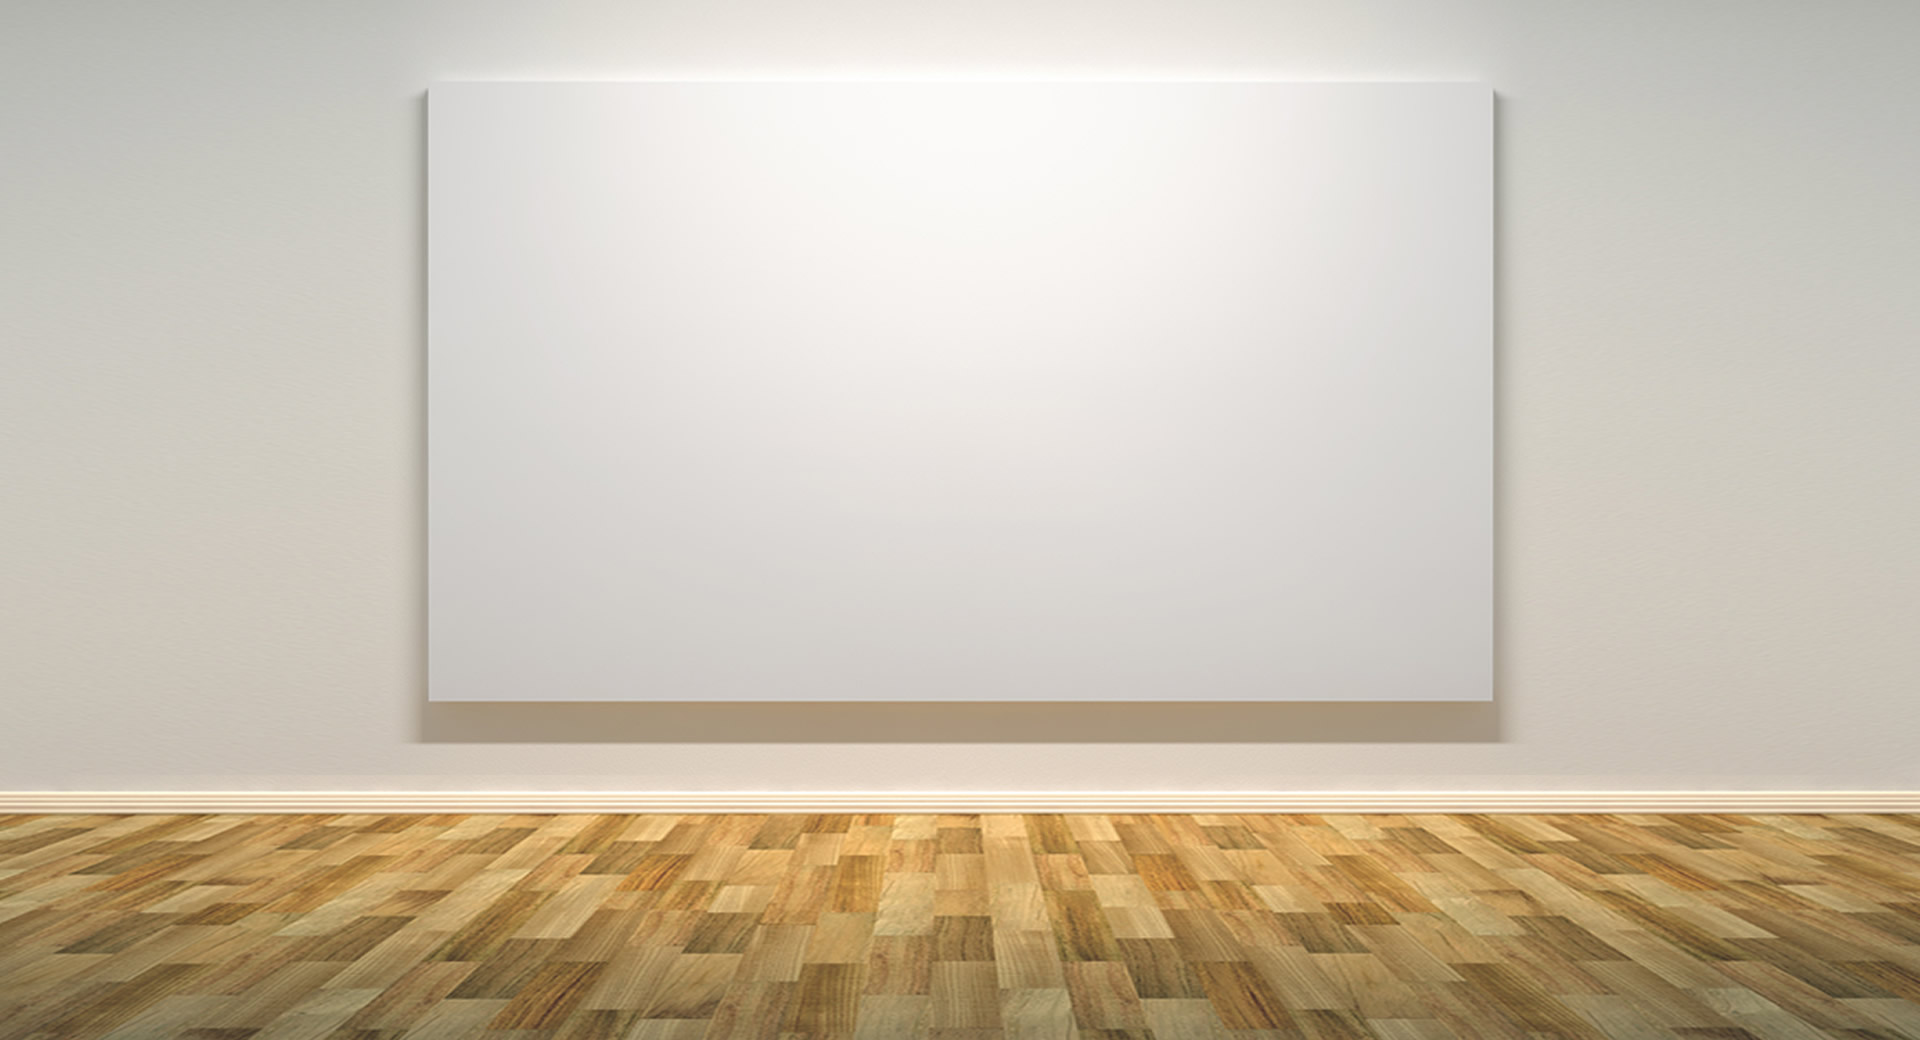 Life is a blank canvas